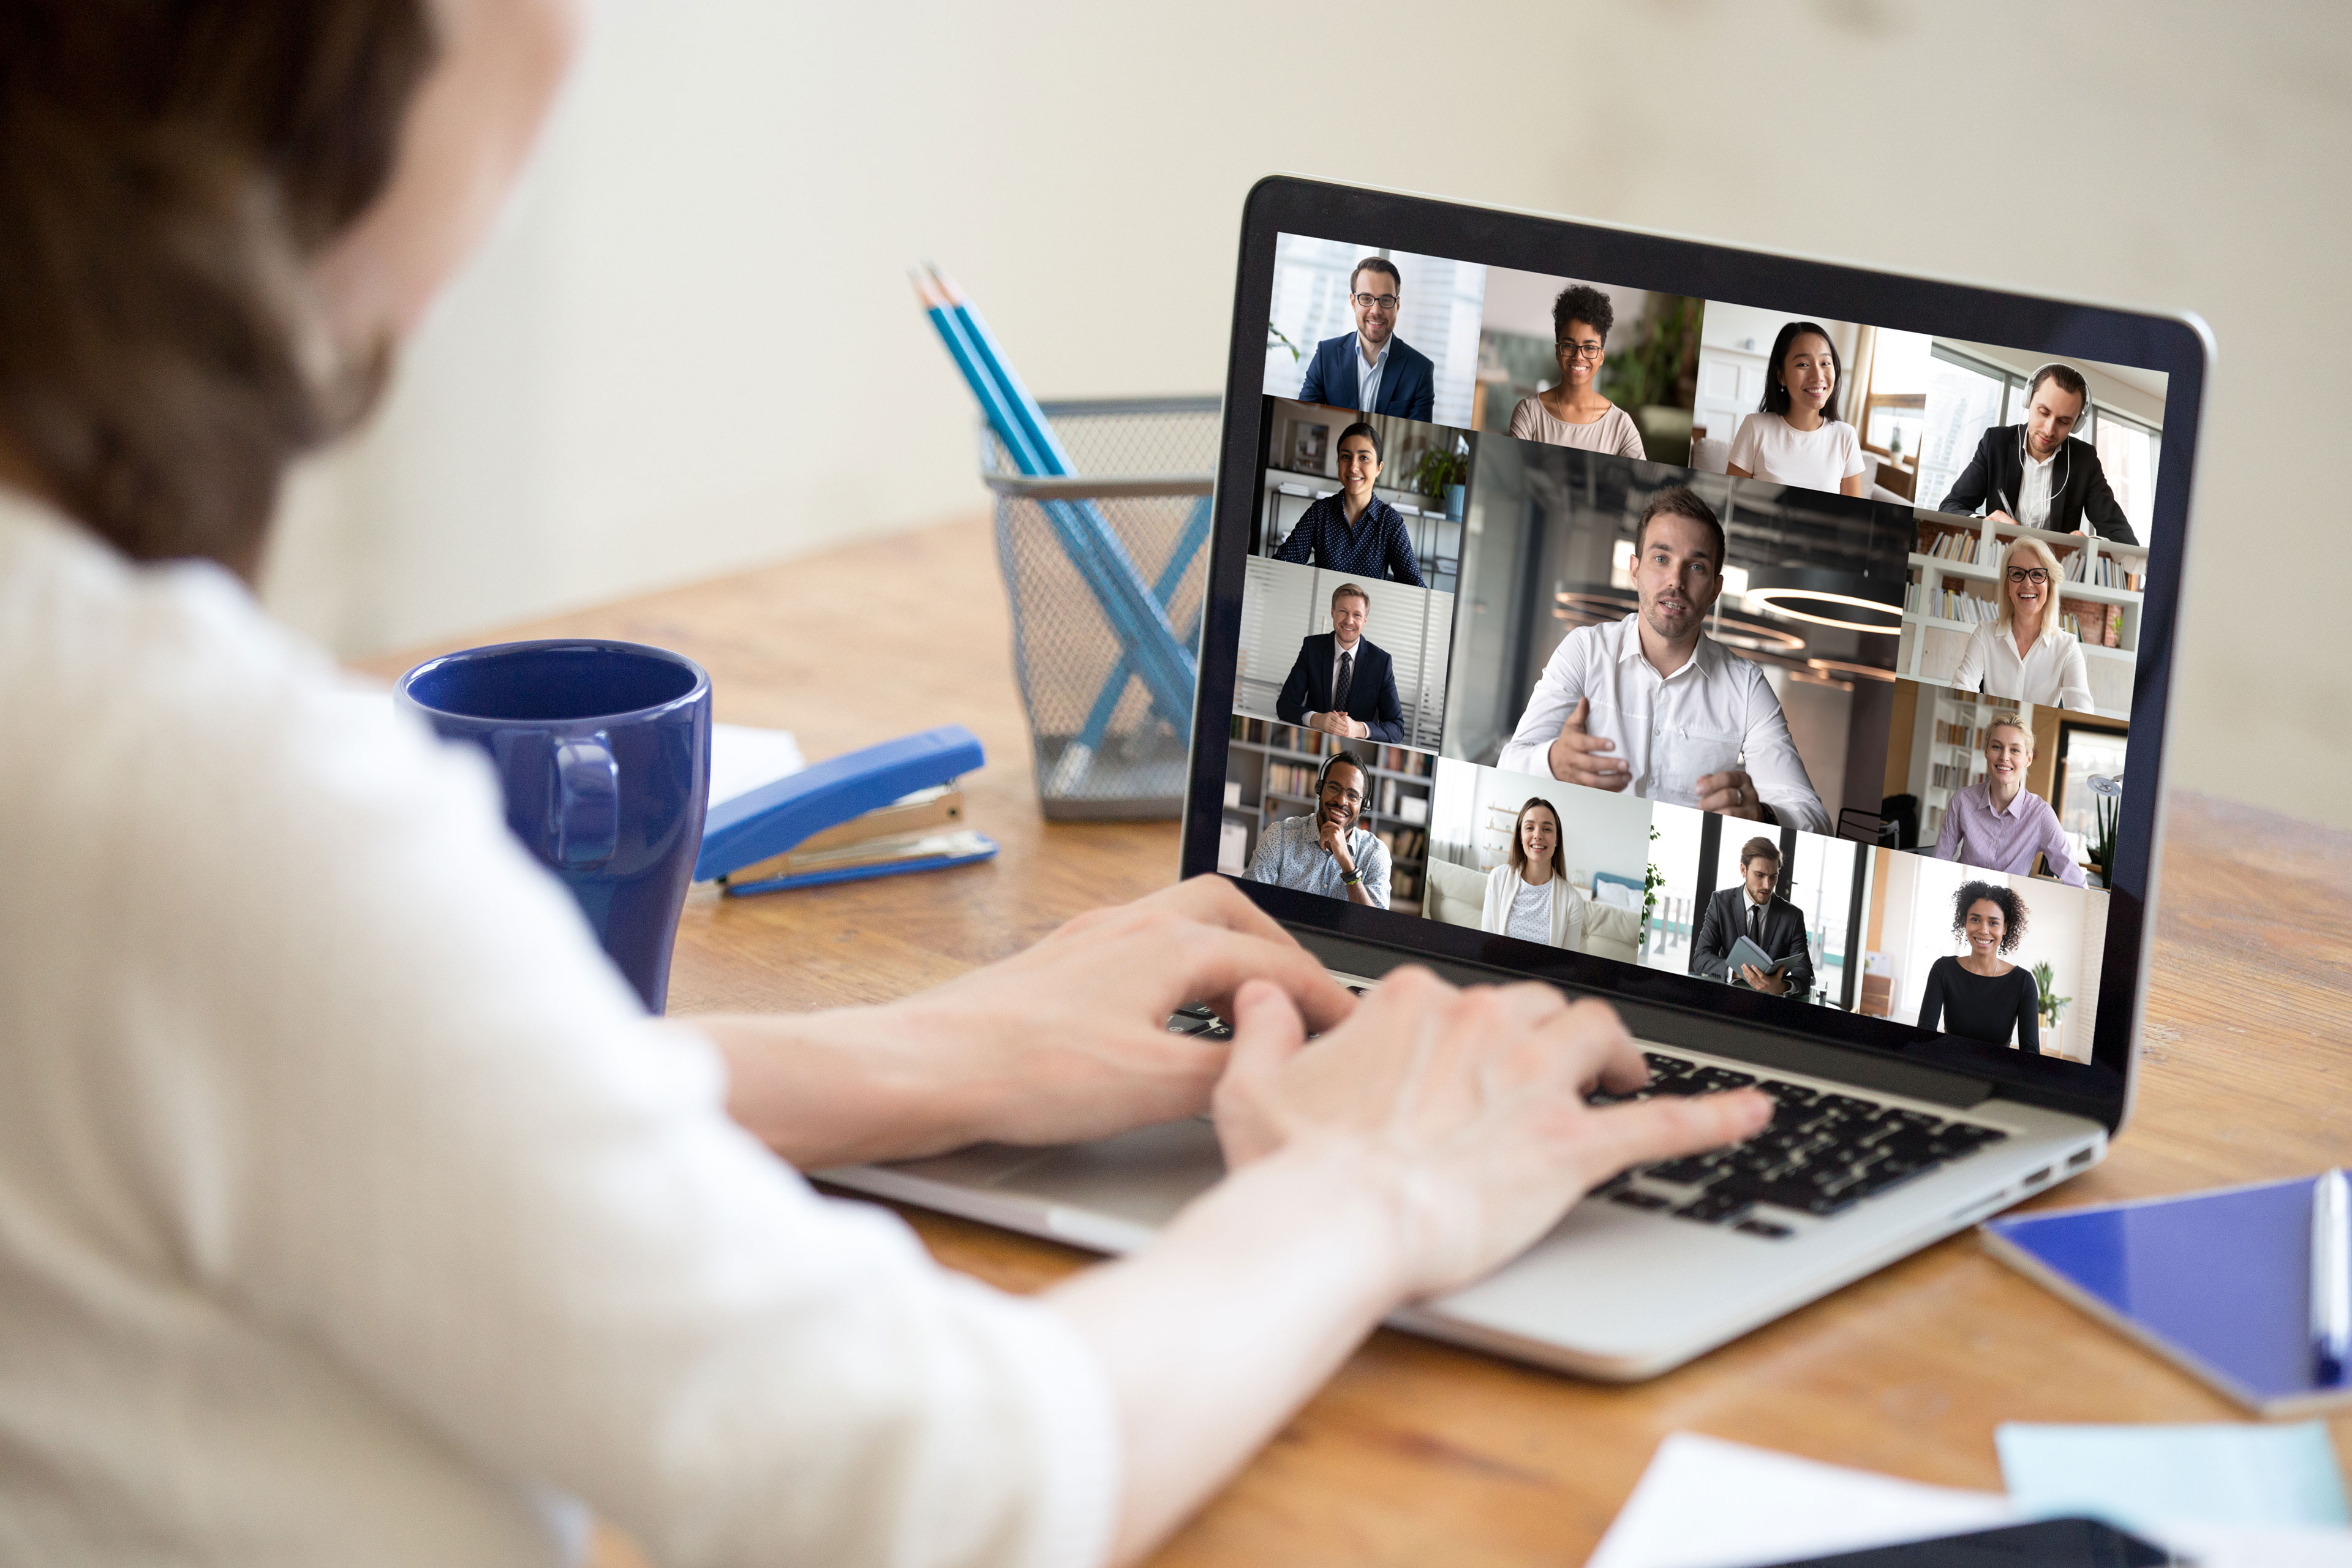 Staff sharing ideas in video conference call